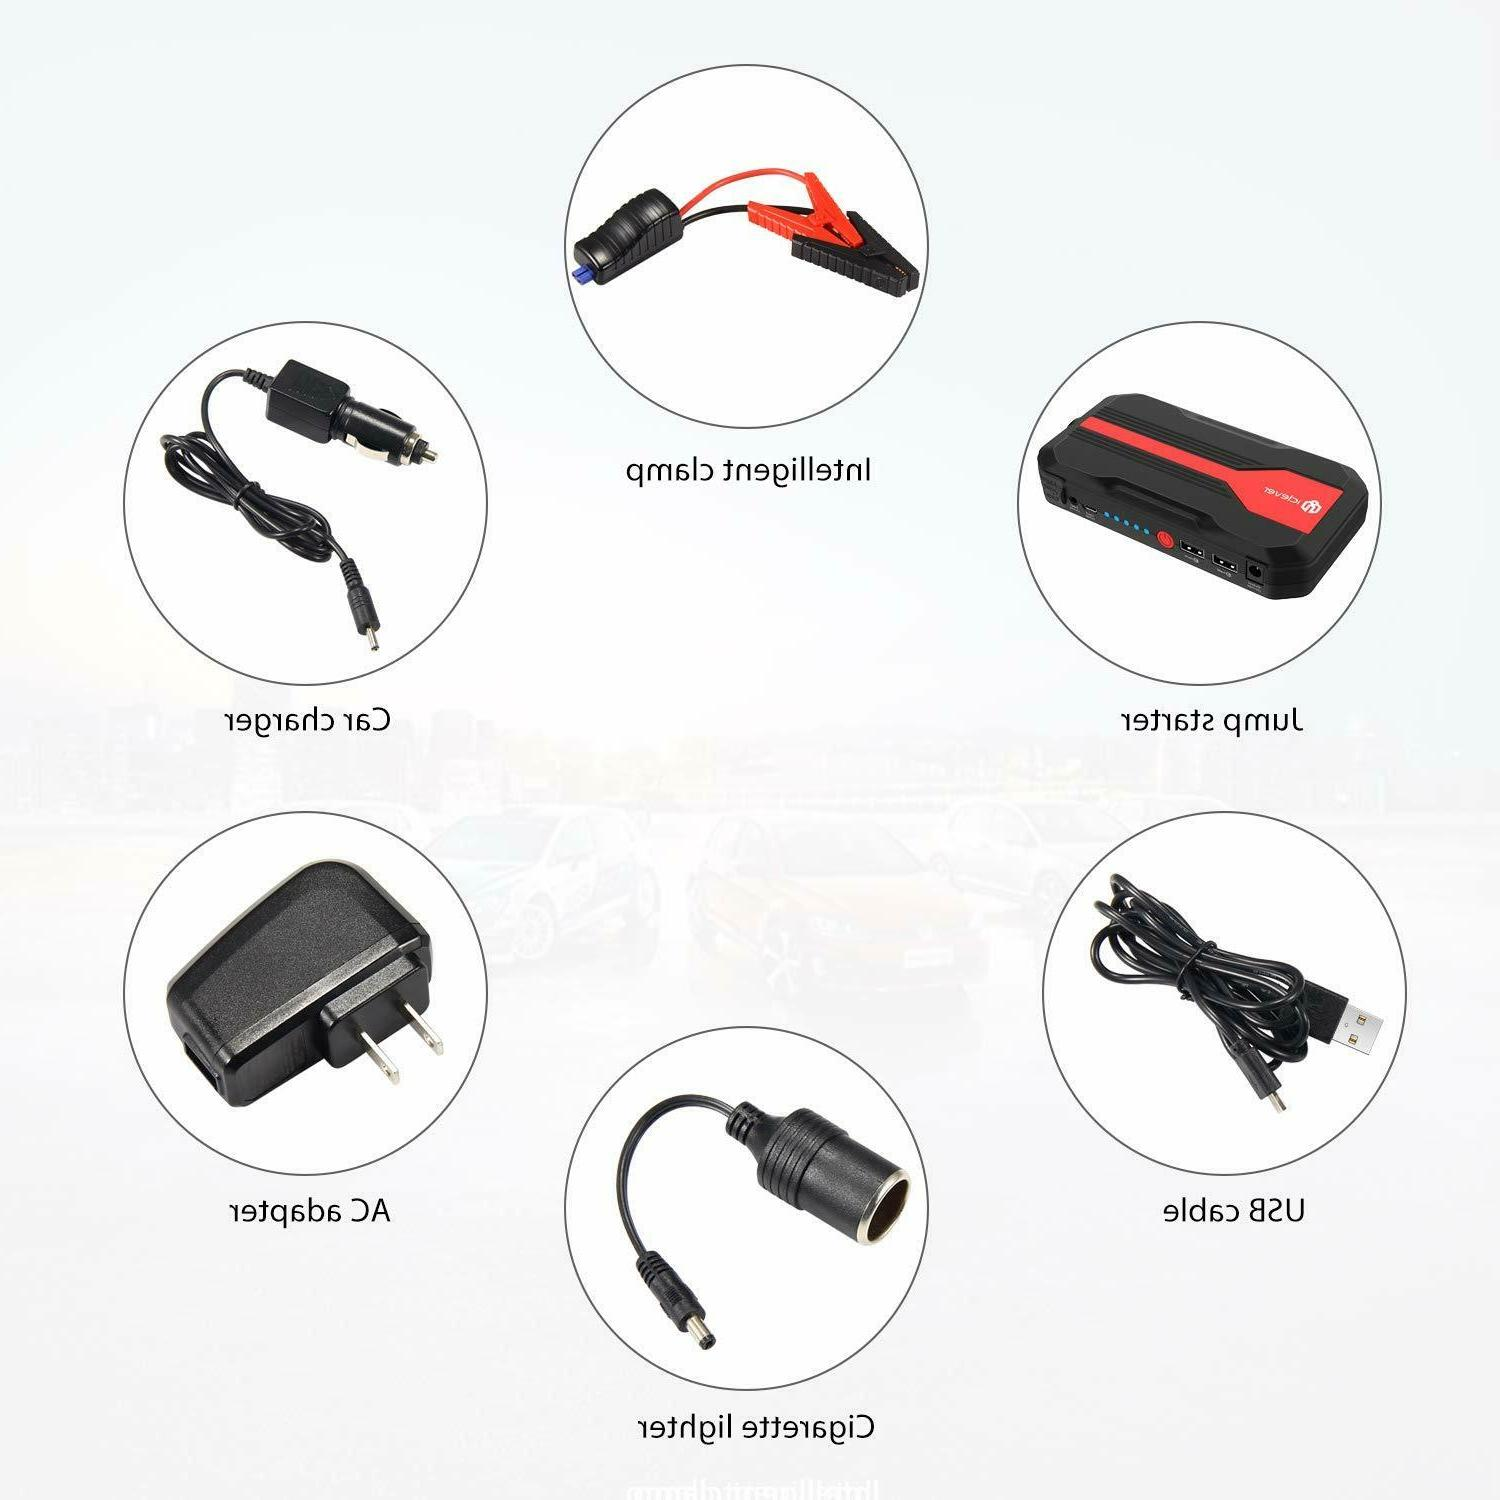 iClever Ultra Portable Starter, 600A Peak 13600mah Car Battery Charger